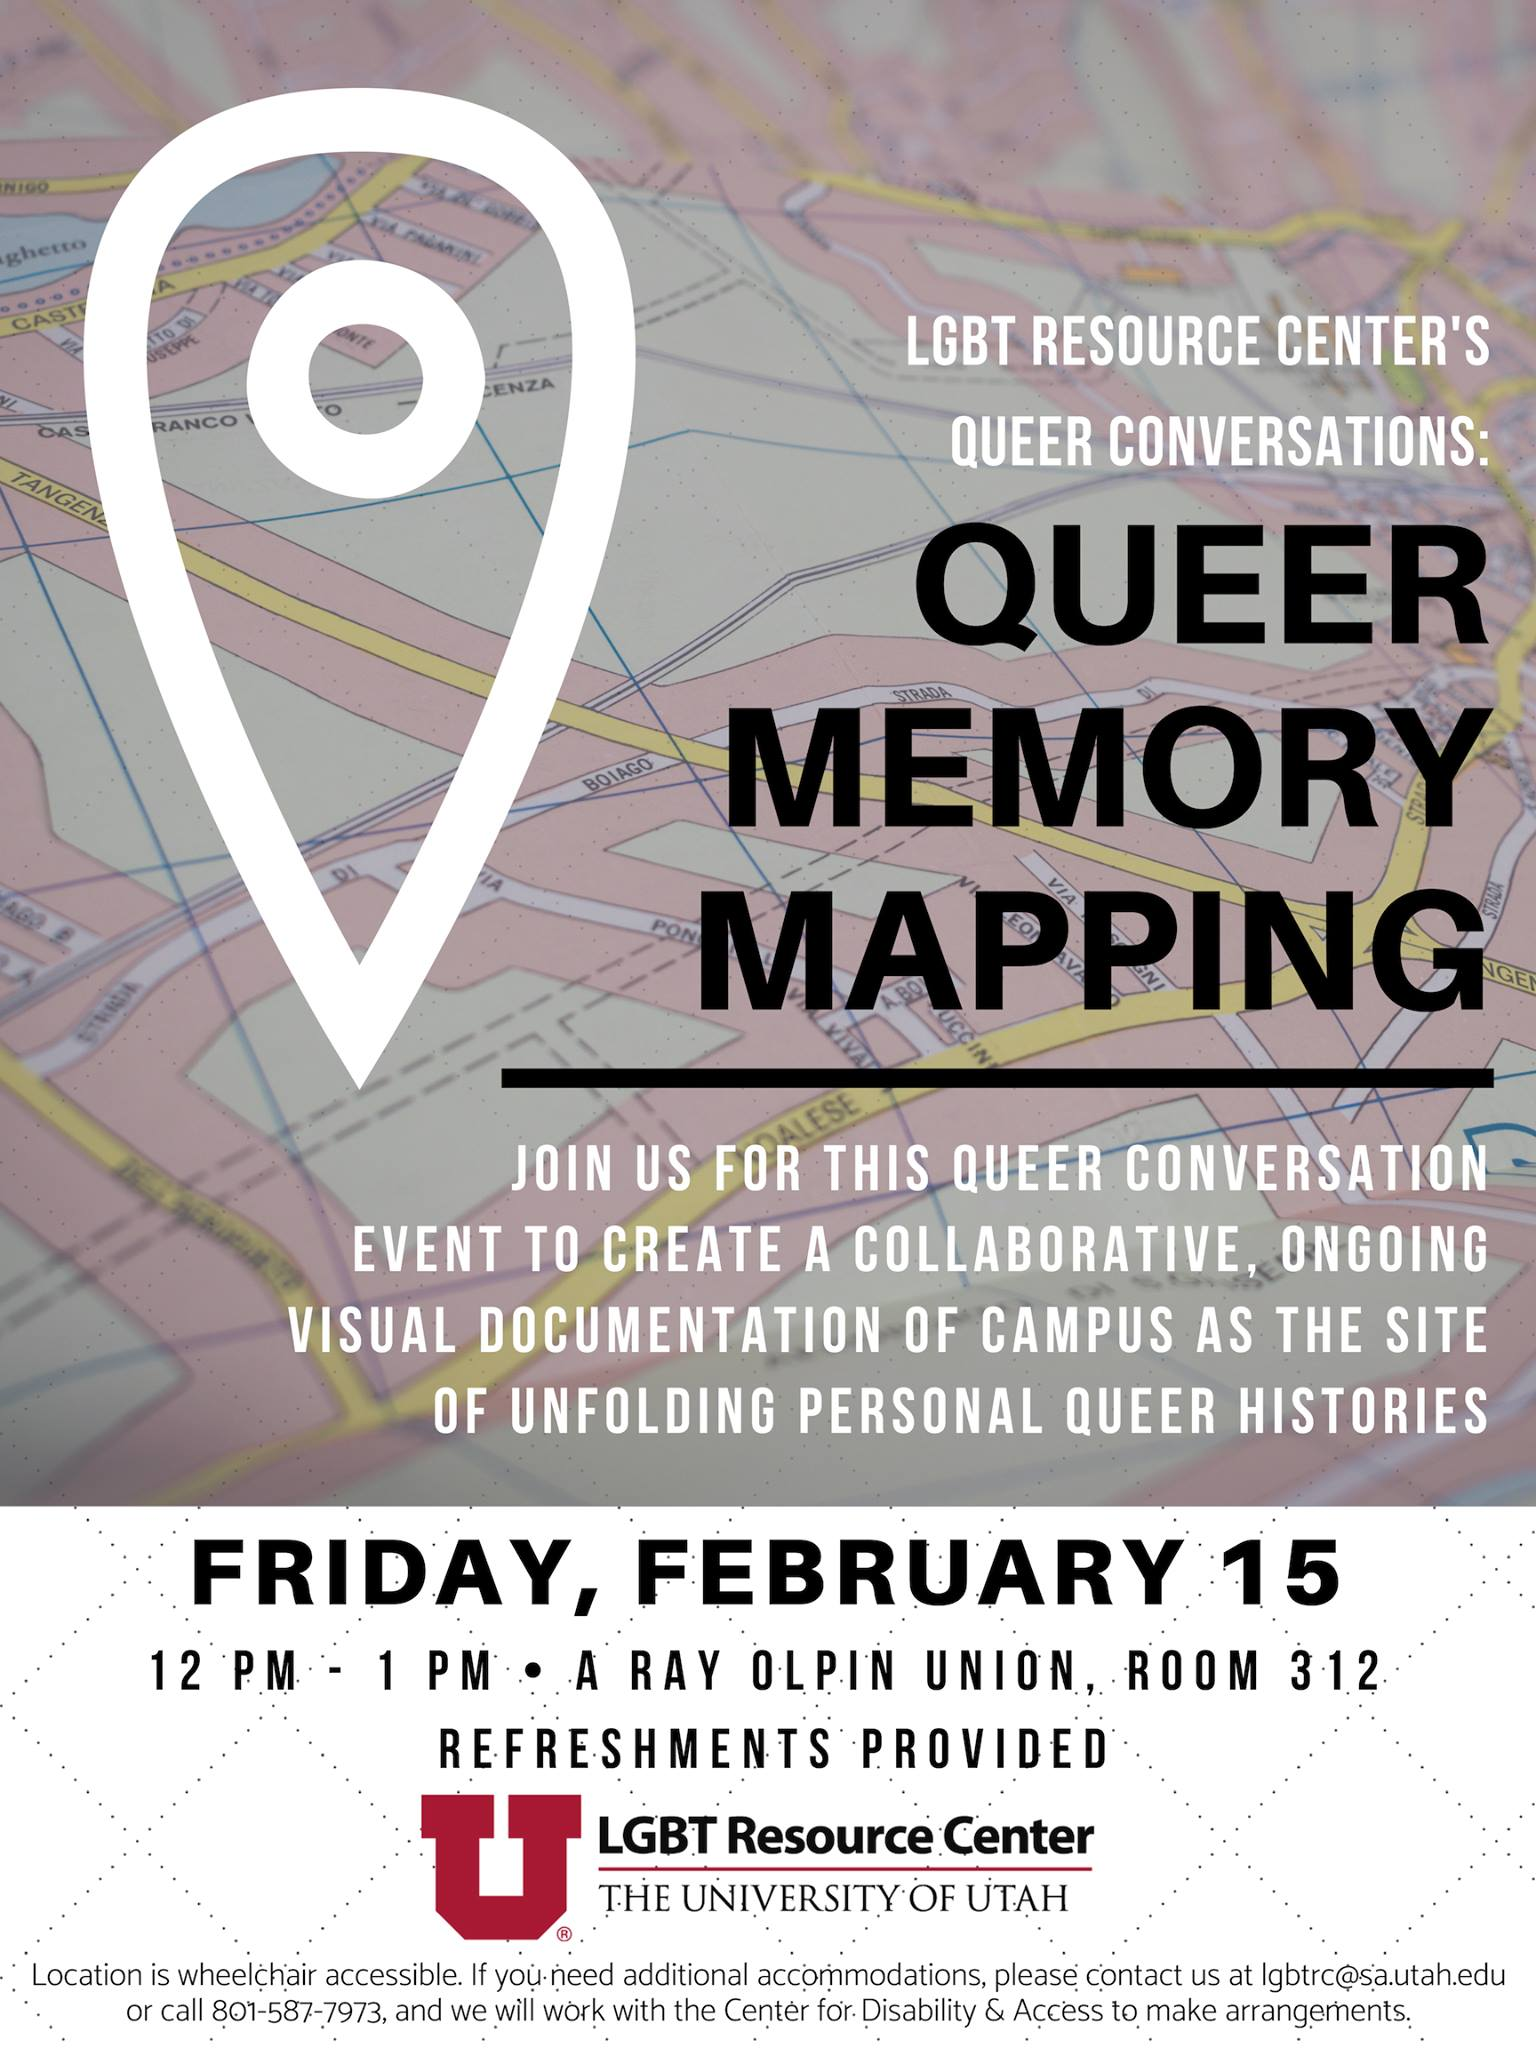 LGBT RESOURCE CENTER'S QUEER CONVERSATIONS: QUEER MEMORY MAPPING; JOIN US FOR THIS QUEER CONVERSATION EVENT TO CREATE A COLLABORATIVE, ONGOING VISUAL DOCUMENTATION OF CAMPUS AS THE SITE OF UNFOLDING PERSONAL QUEER HISTORIES; FRIDAY, FEBRUARY 15; 12PM - 1PM, A RAY OLPIN UNION, ROOM 312; REFRESHMENTS PROVIDED. There is an LGBT Resource Center logo at the bottom, and small text underneath that reads:Location is wheelchair accessible. If you need additional accommodations, please contact us at lgbtrc@sa.utah.edu or call 801-587-7973, and we will work with the Center for Disability & Access to make arrangements.